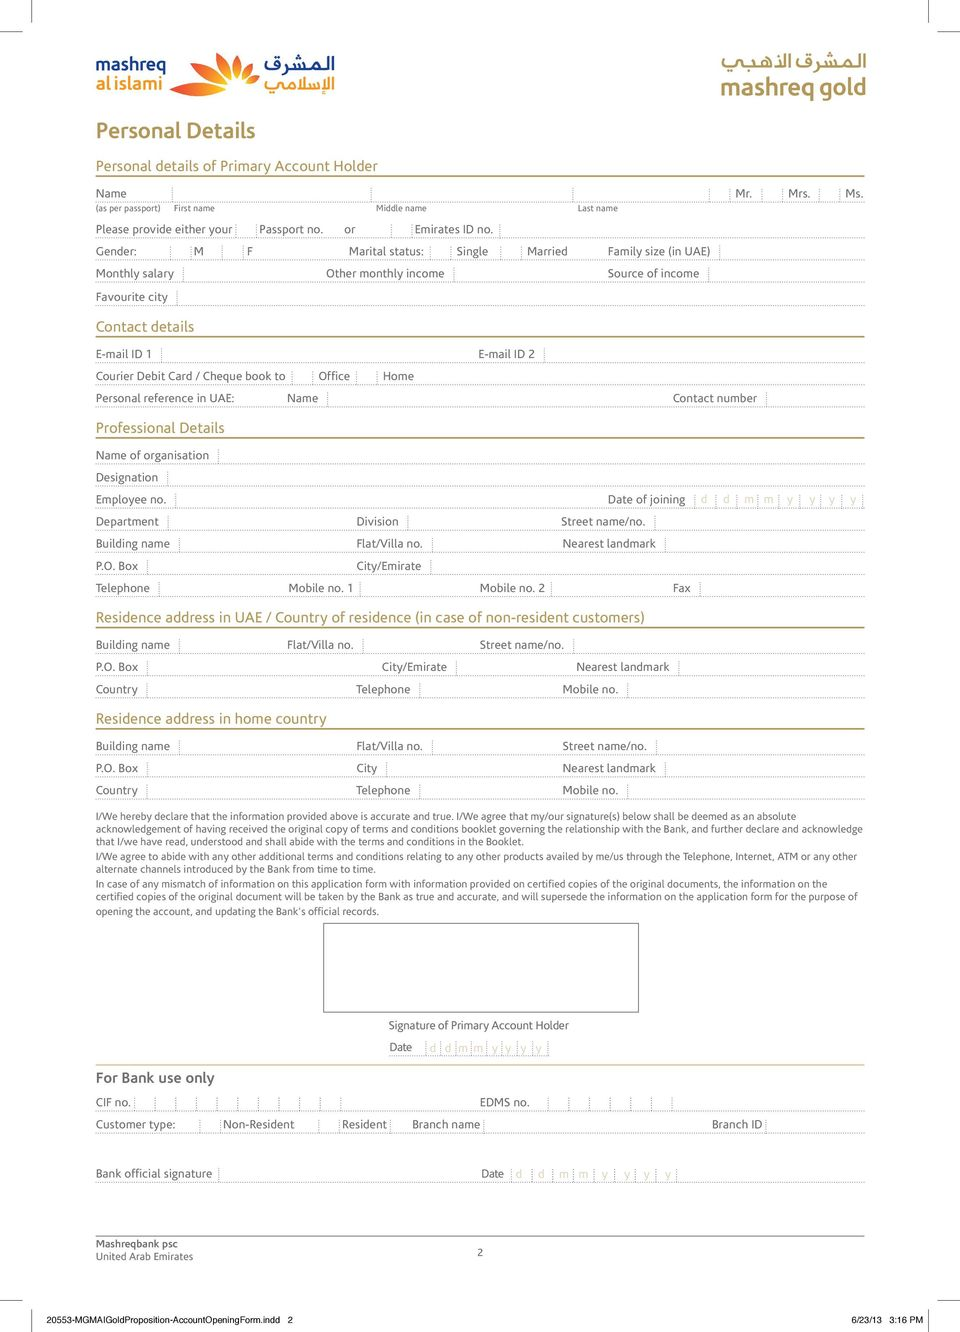 book to Office Home Personal reference in UAE: Name Contact number Professional Details Name of organisation Designation Employee no. of joining Department Division Street name/no.